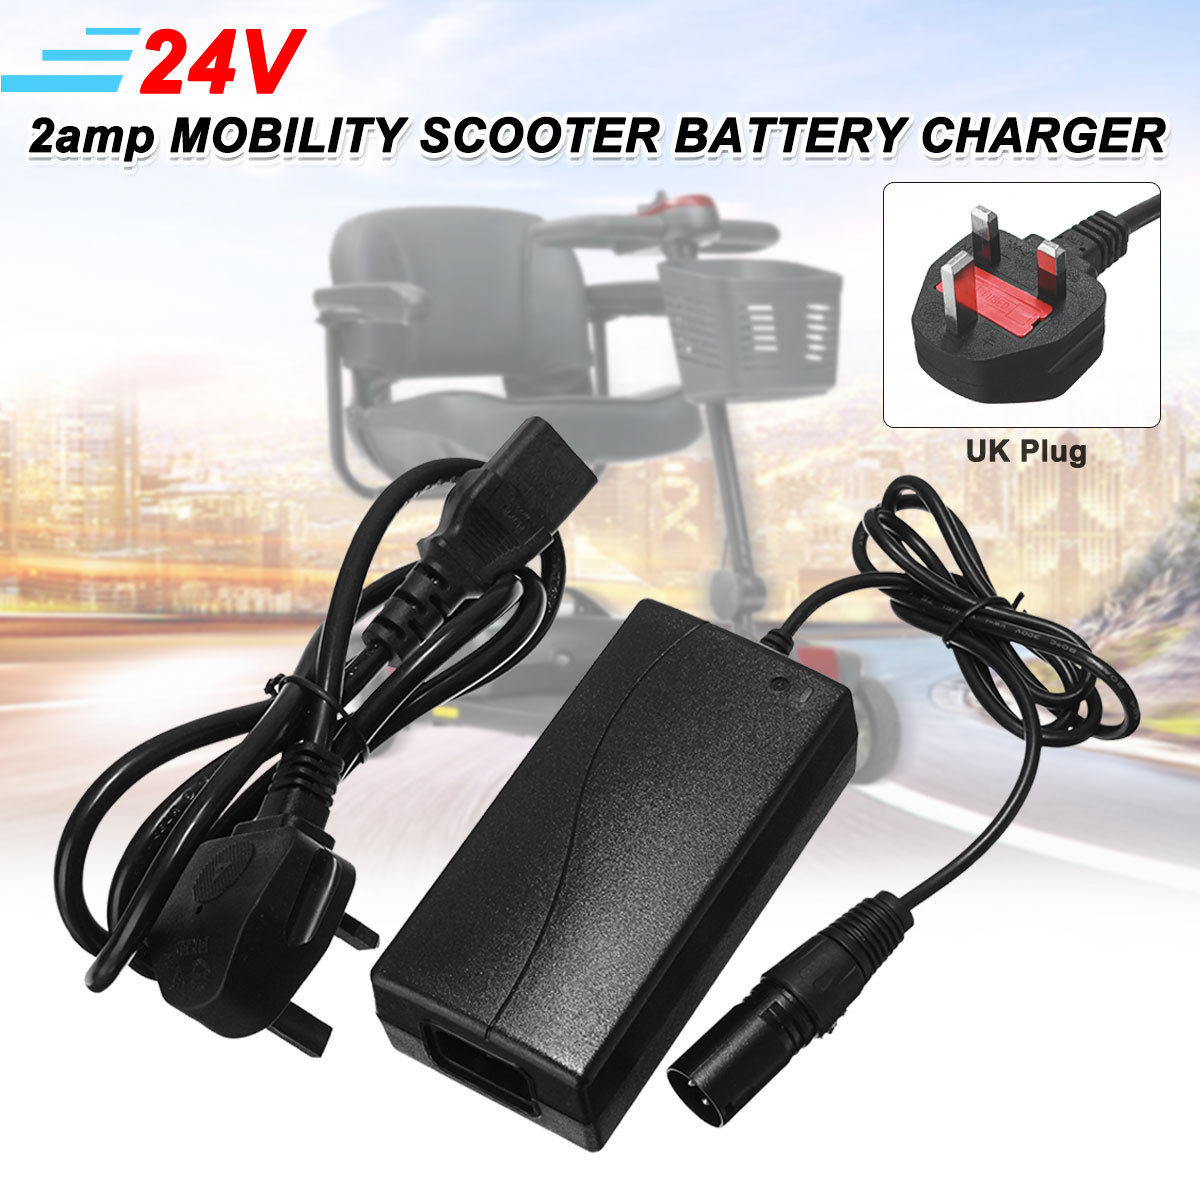 24V 2A 2amp Quality Mobility Scooter Battery Charger Switching Power Supply Floating Charge Function with UK Plug